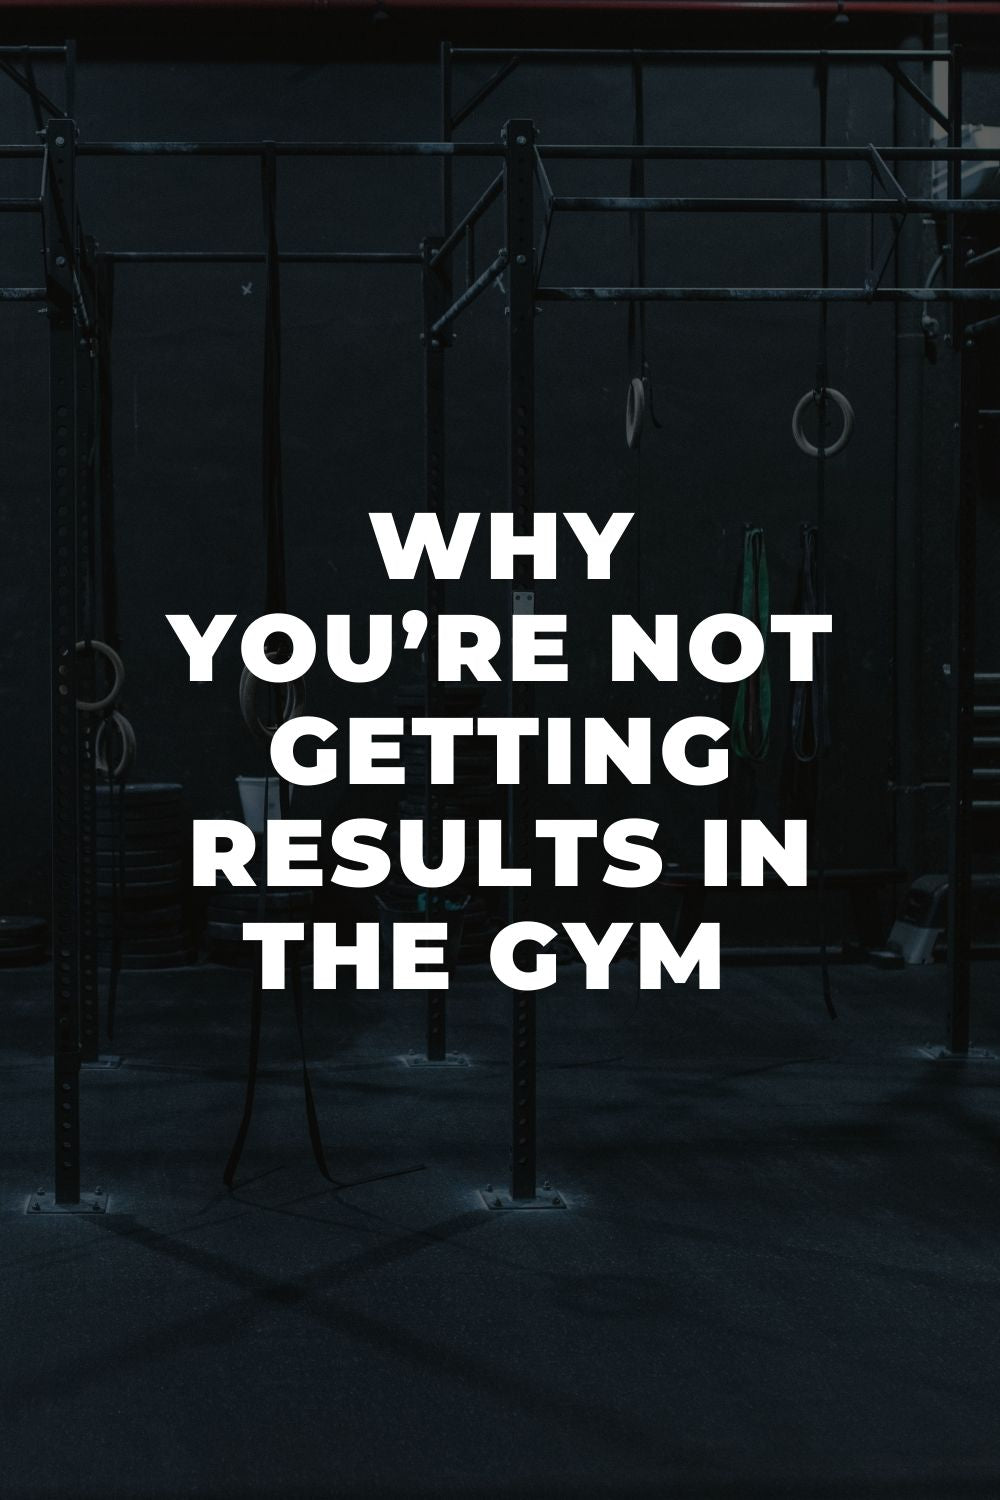 Why You're Not Getting Results in the Gym